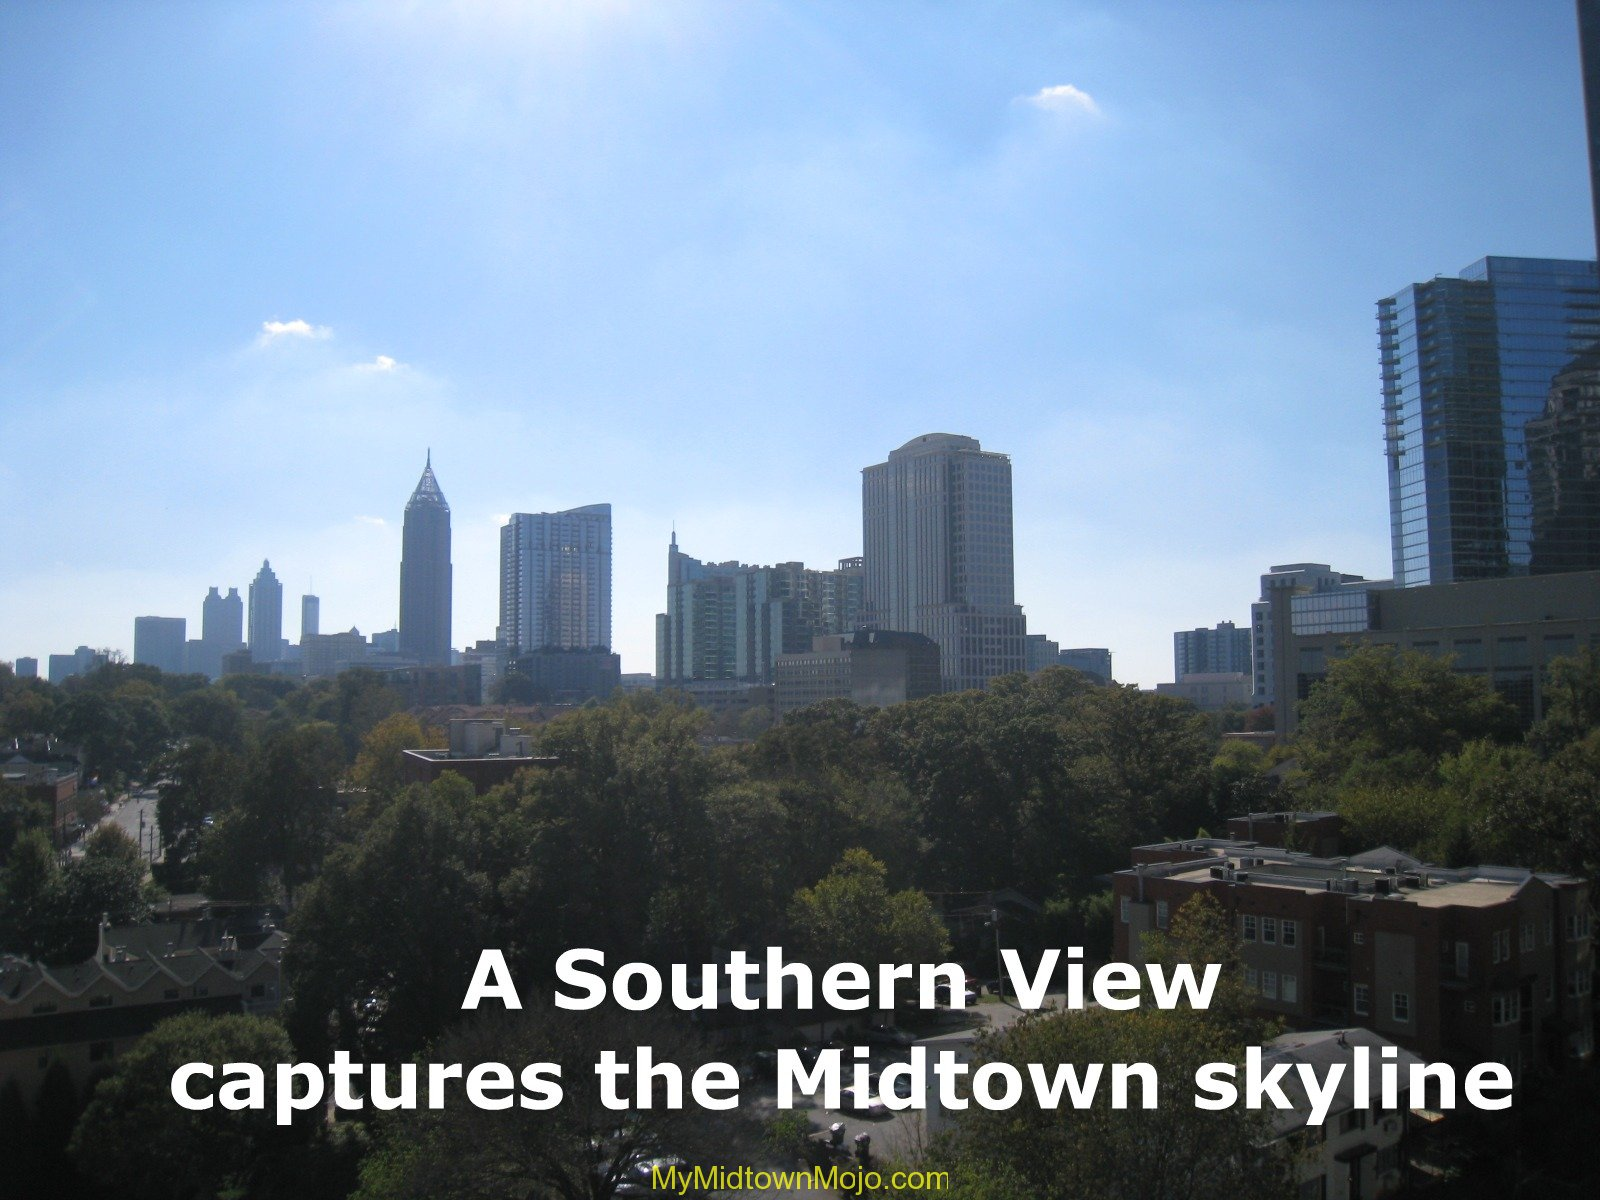 luxe-midtown-skyline-viewspk